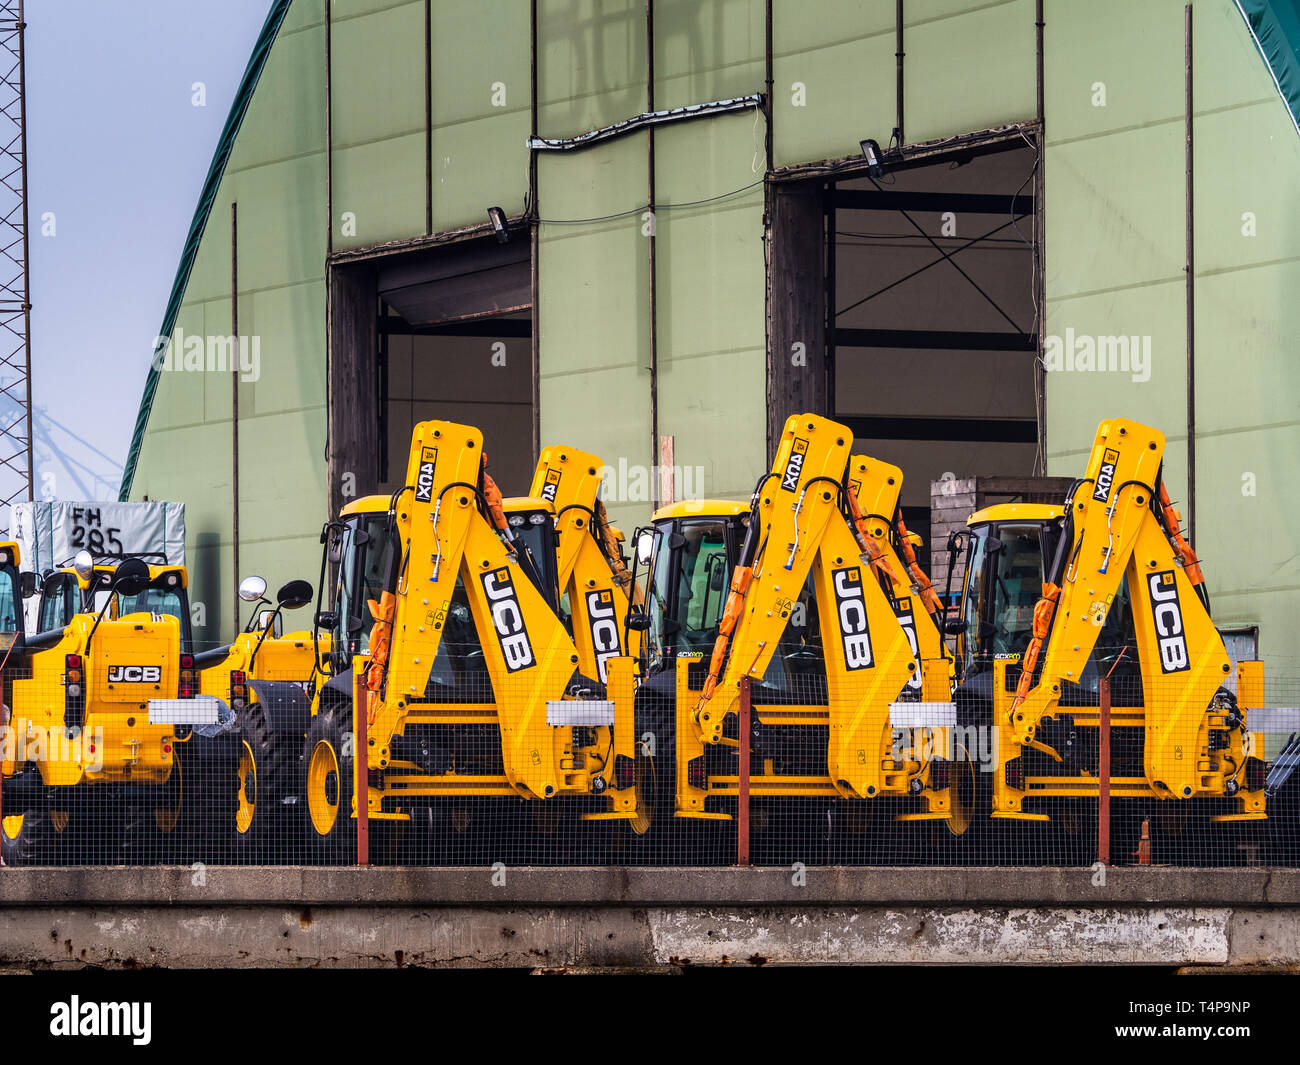 British Exports - JCB diggers or backhoe loaders  ready for export at the port of Harwich in Eastern England. - Stock Image